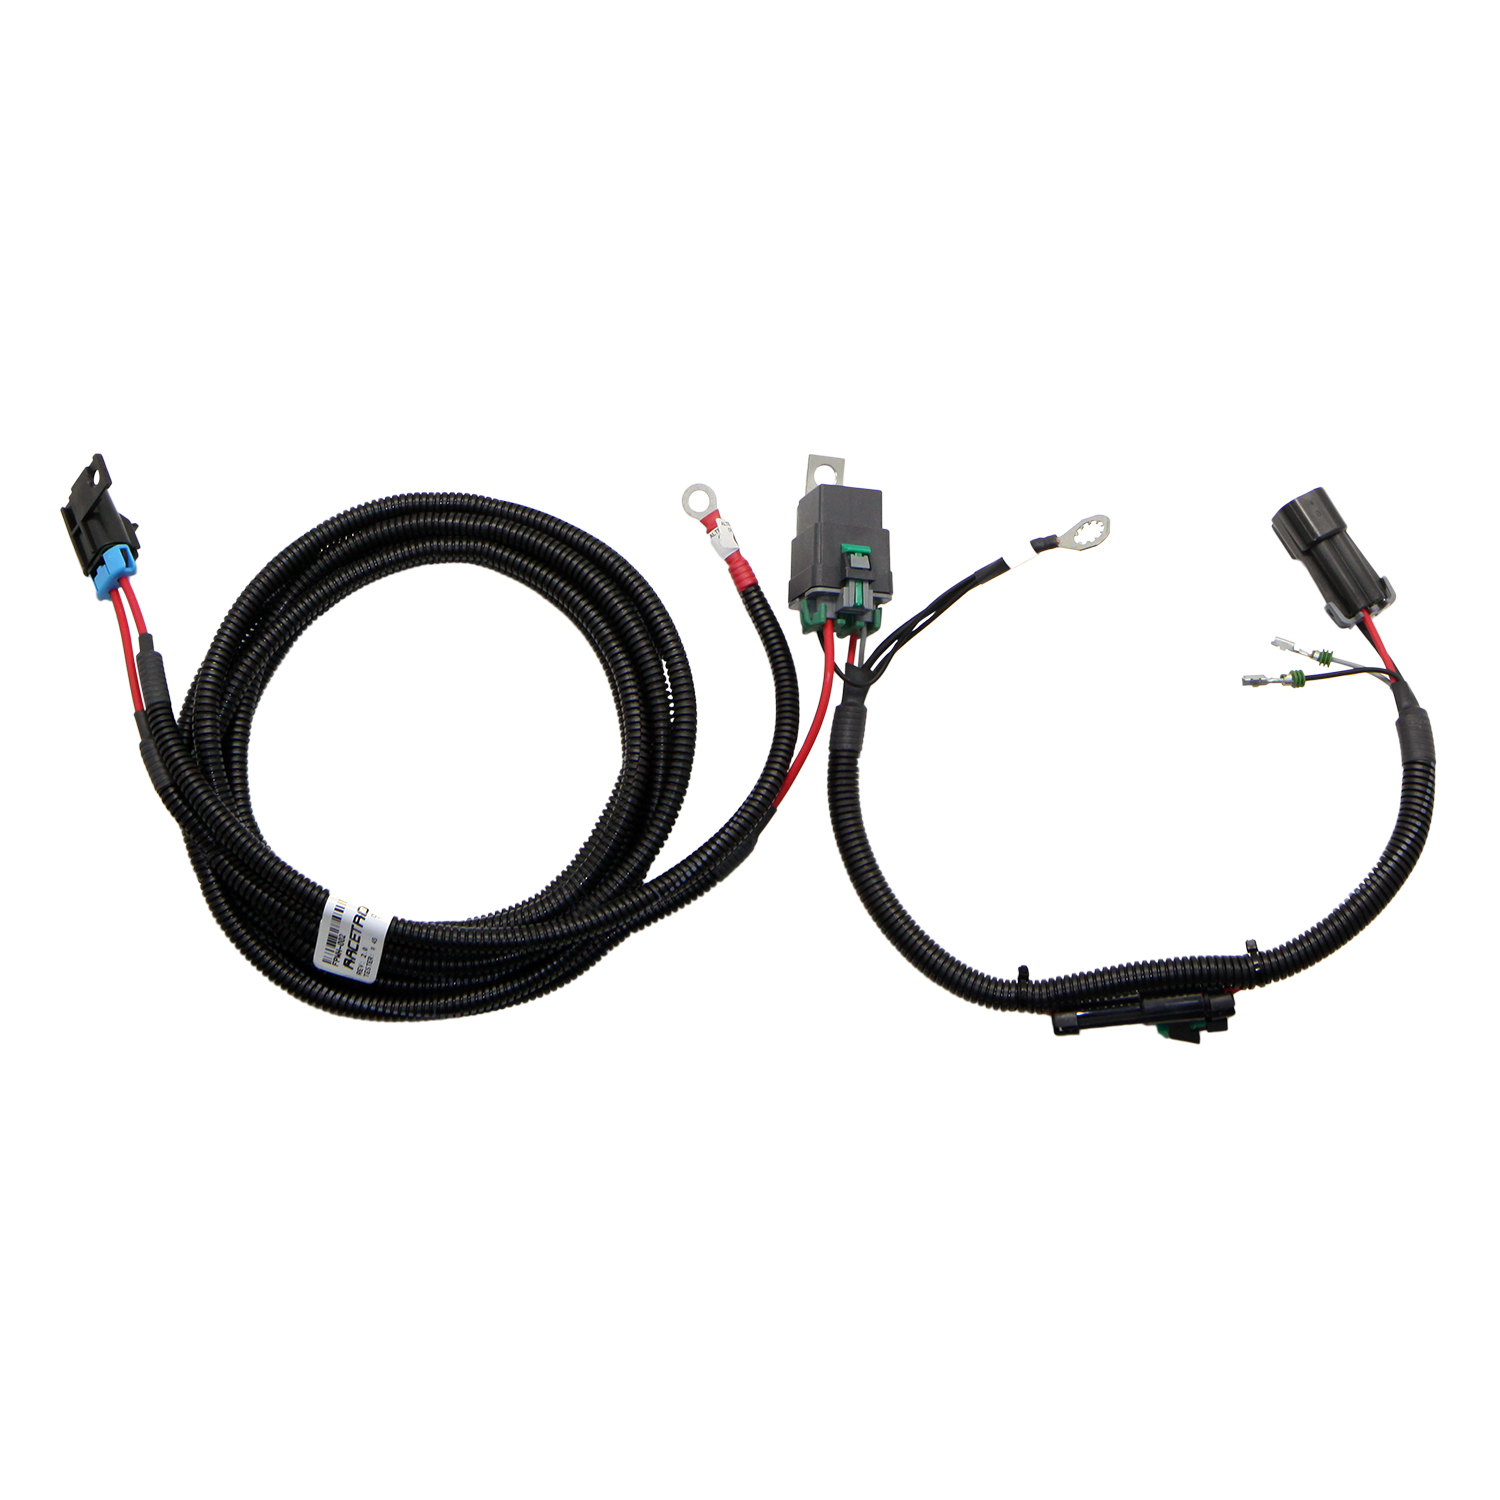 F98 Fuel Pump Wiring Harness: Pontiac Fuel Pump Wiring Harness At Executivepassage.co